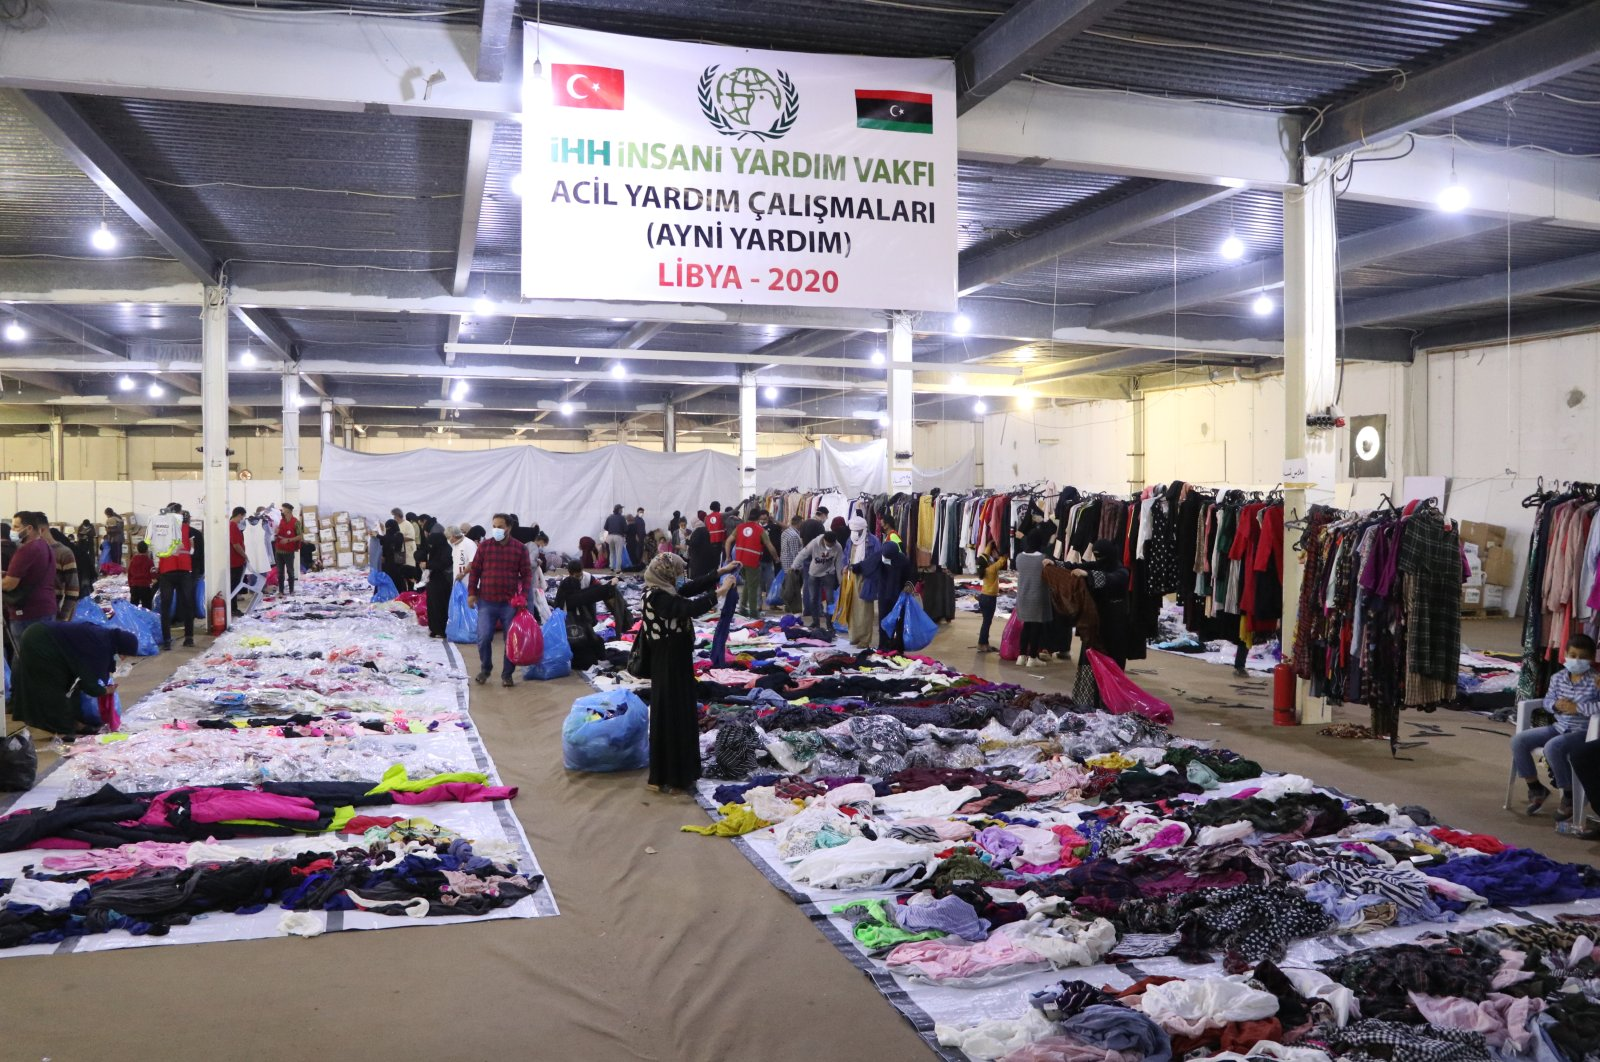 People look through clothing items at the IHH charity bazaar for displaced Libyans, Misrata, Libya, Nov. 13, 2020. (AA Photo)